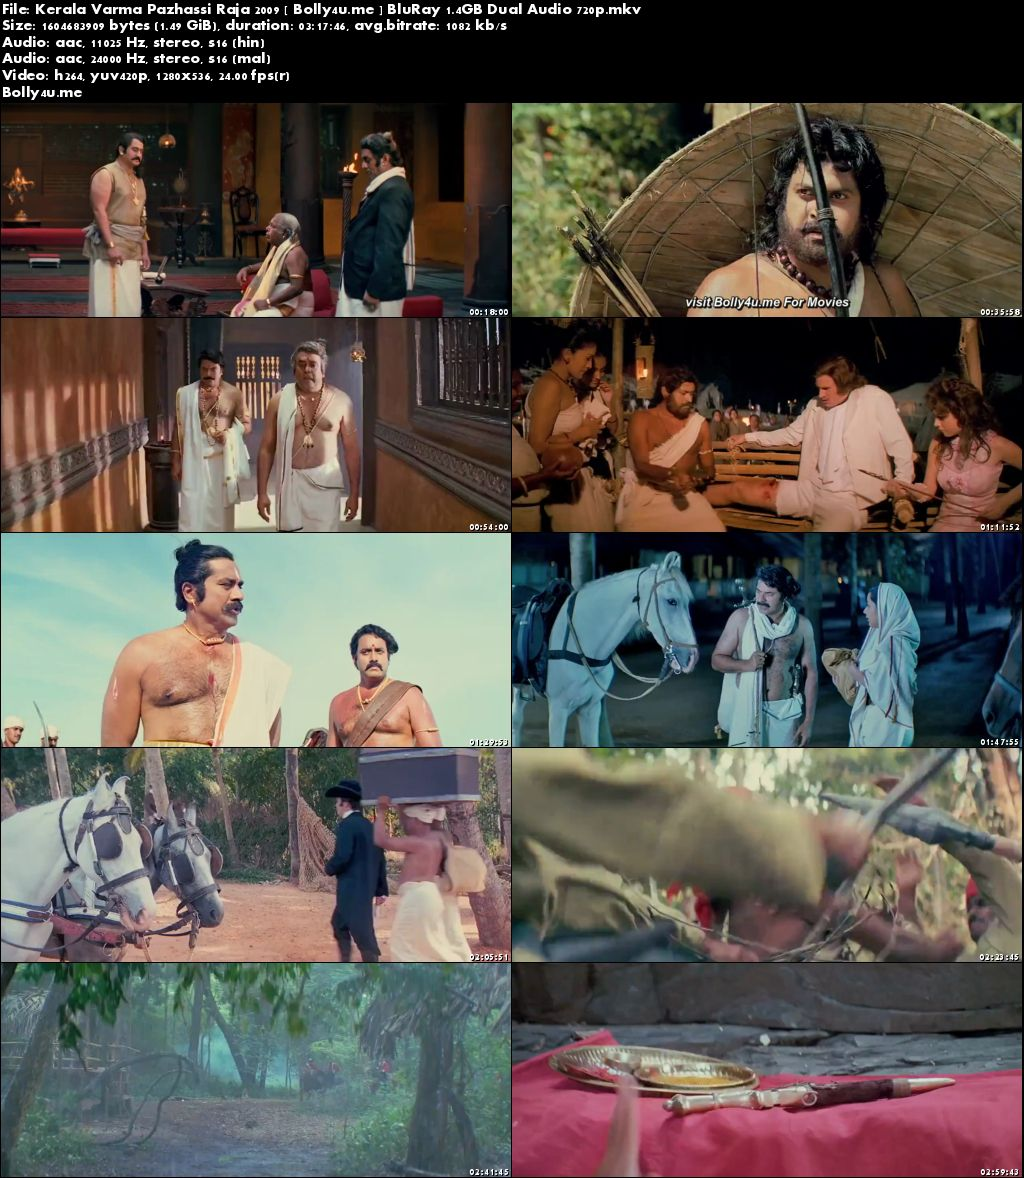 Kerala Varma Pazhassi Raja 2009 BluRay Hindi Dual Audio 720p Download